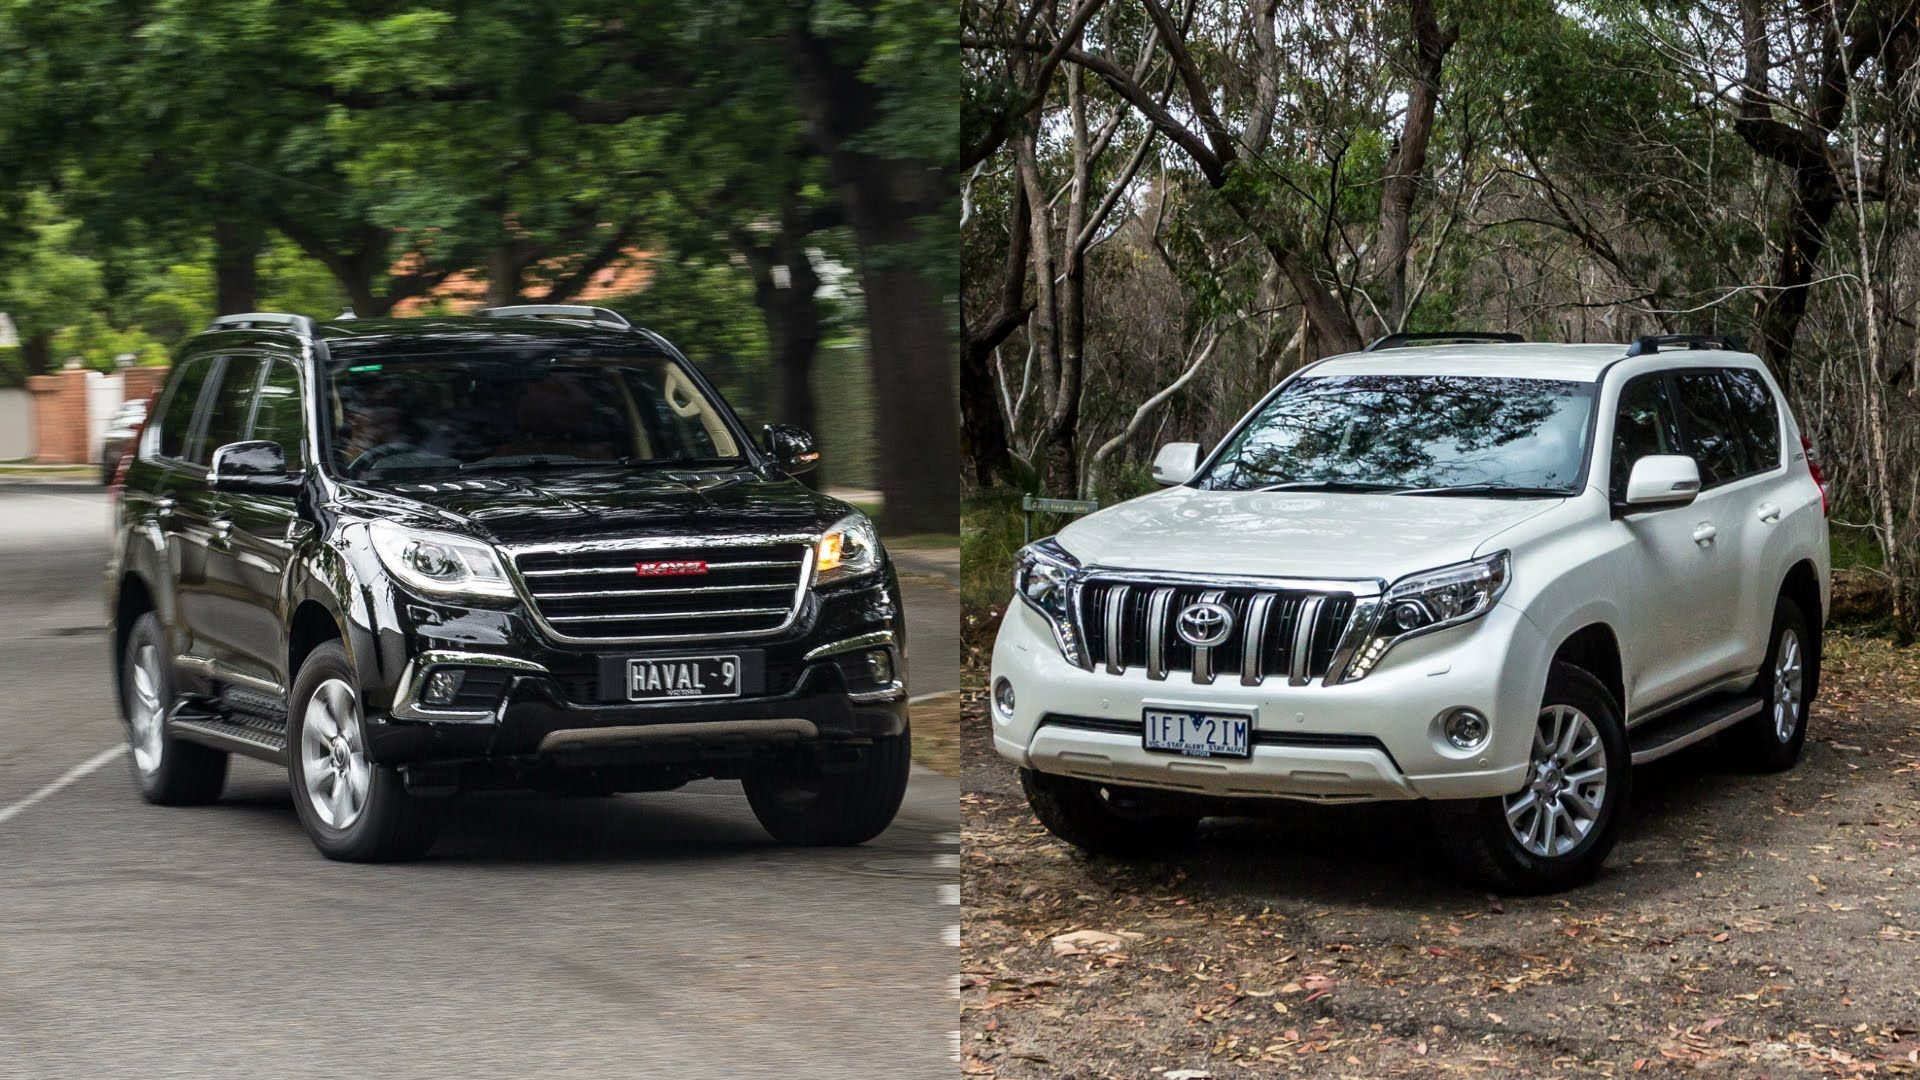 Toyota prado vs haval features comfort reliability durability and other essential features including price comparison between prado and haval